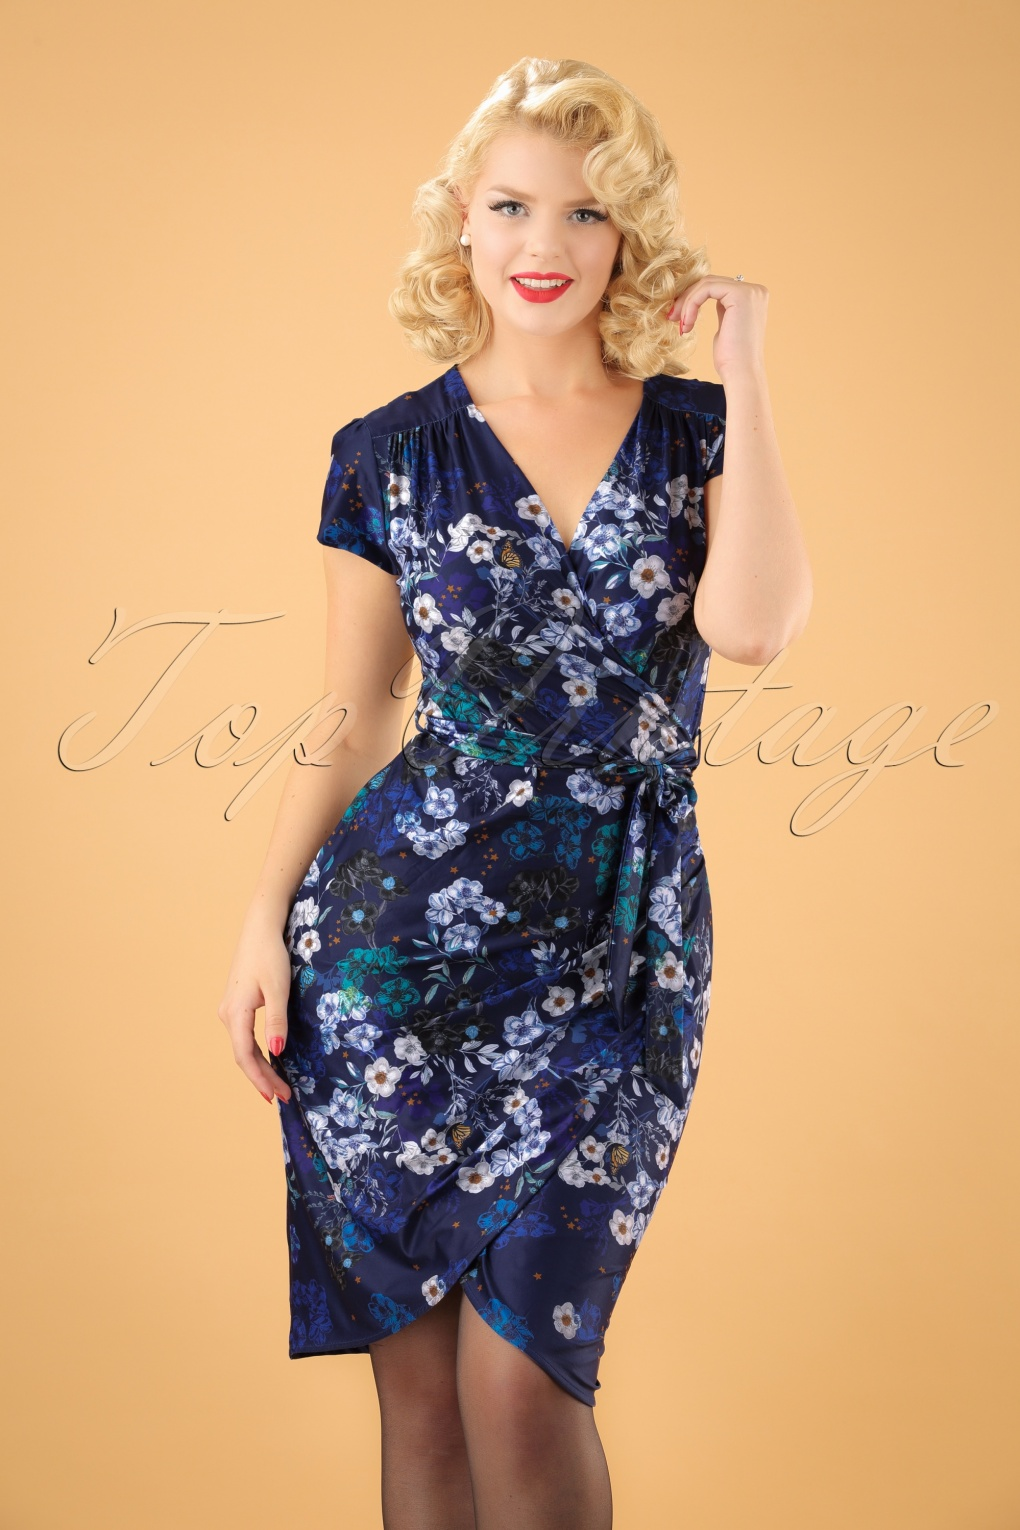 Vintage Inspired Cocktail Dresses, Party Dresses 60s Botanical Stardust Wrap Dress in Navy £75.59 AT vintagedancer.com